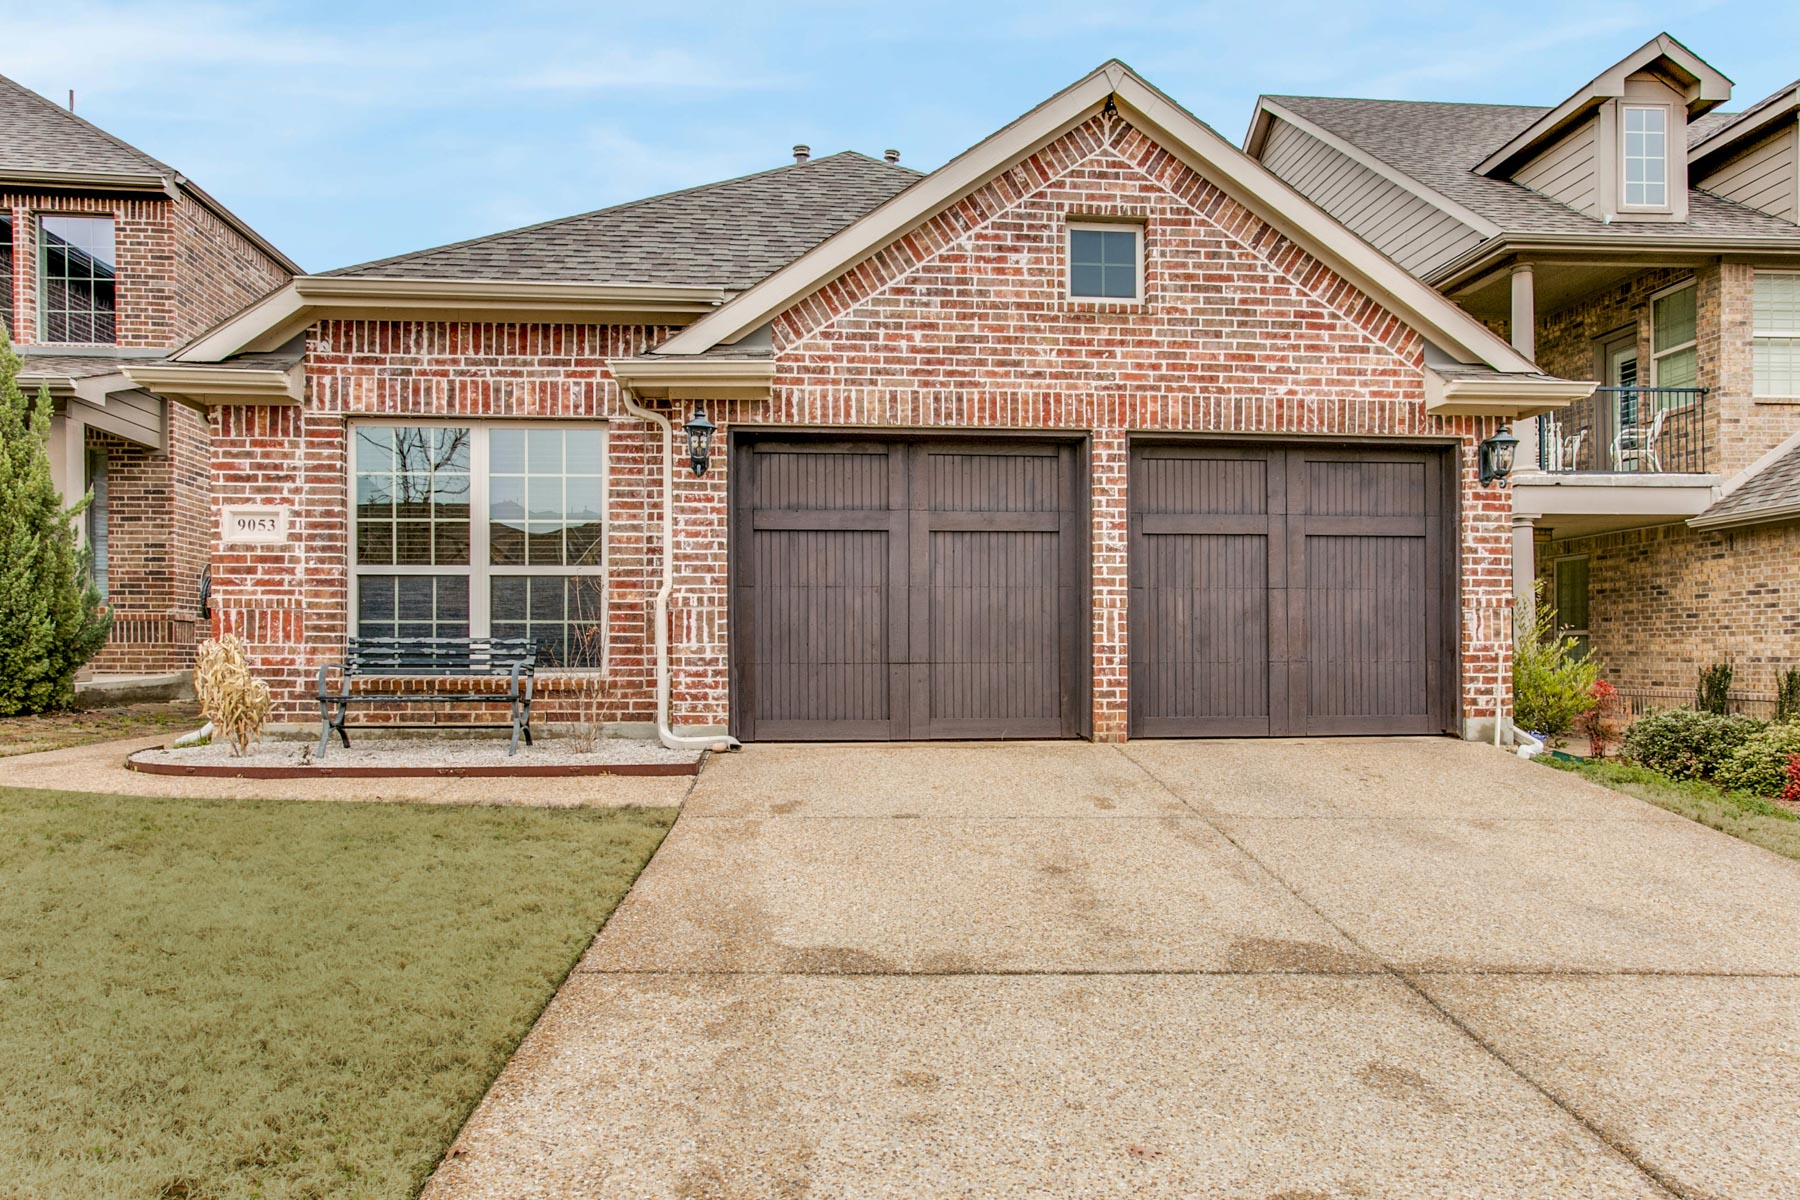 Single Family Home for Sale at Academy at Waterchase Villa 9053 Cottonwood Village Drive, Fort Worth, Texas, 76120 United States